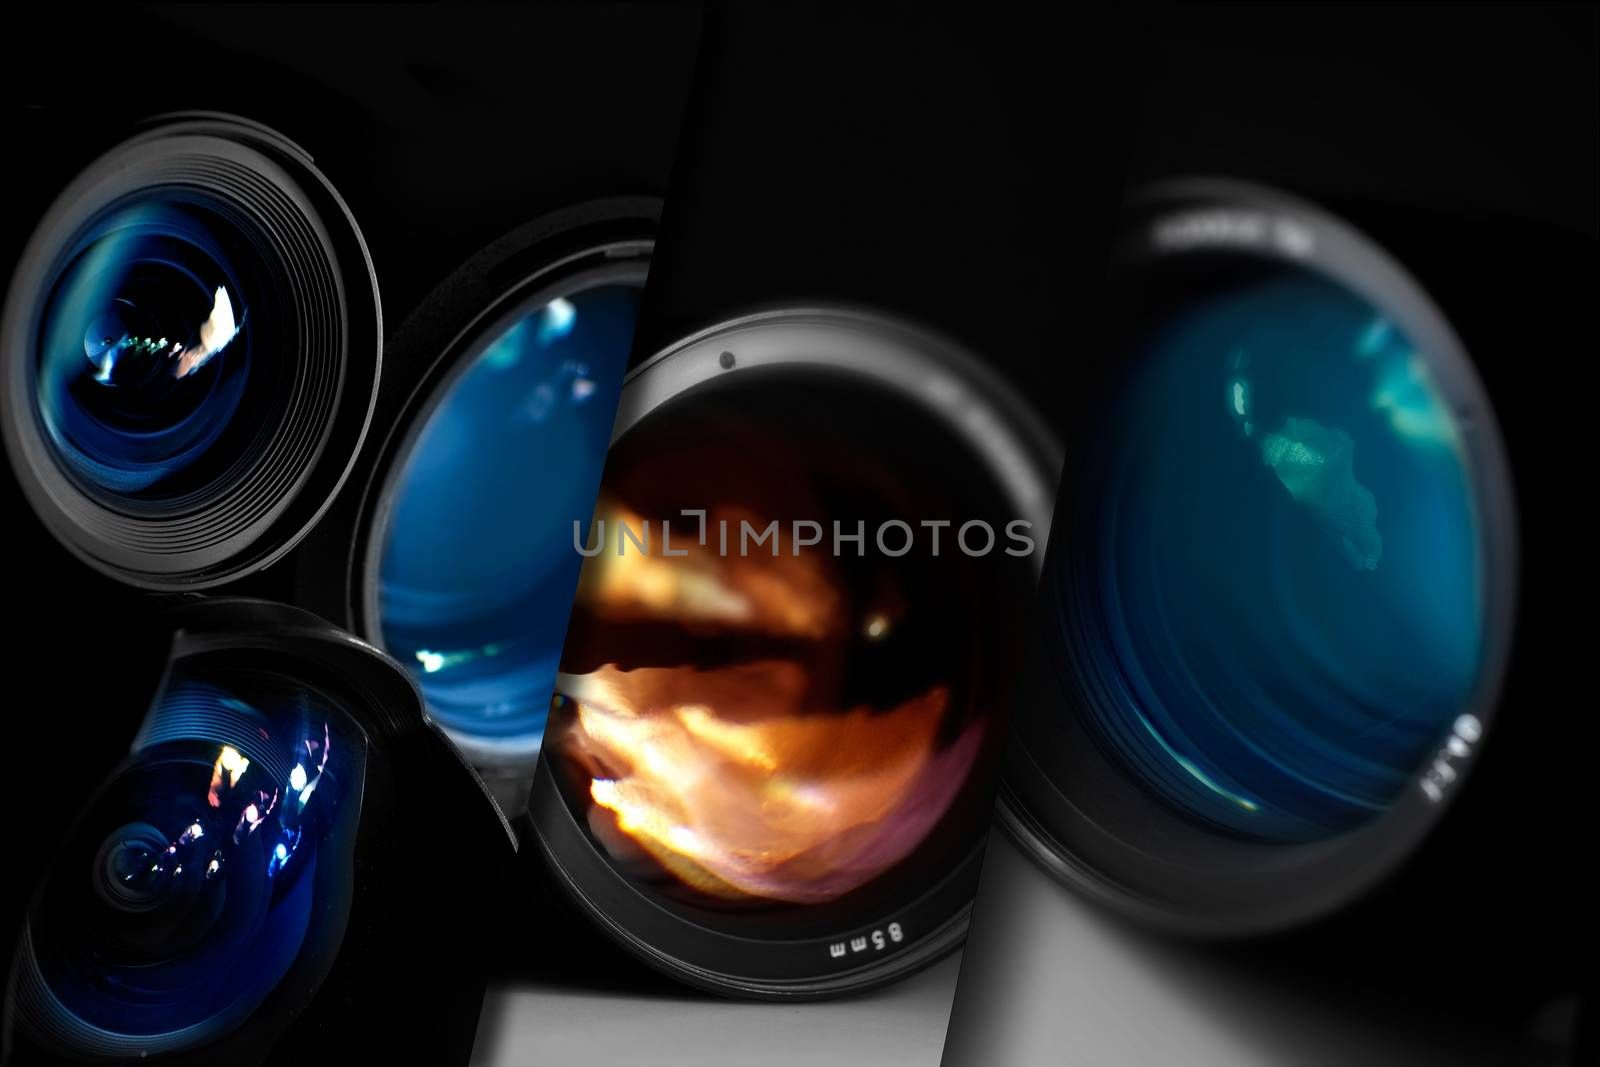 Cool Dark Photography Concept with Many Professional 35mm Lenses. Great PHotography Concept for Photographers, Photo Studios, Photo Blogs and Other Websites.